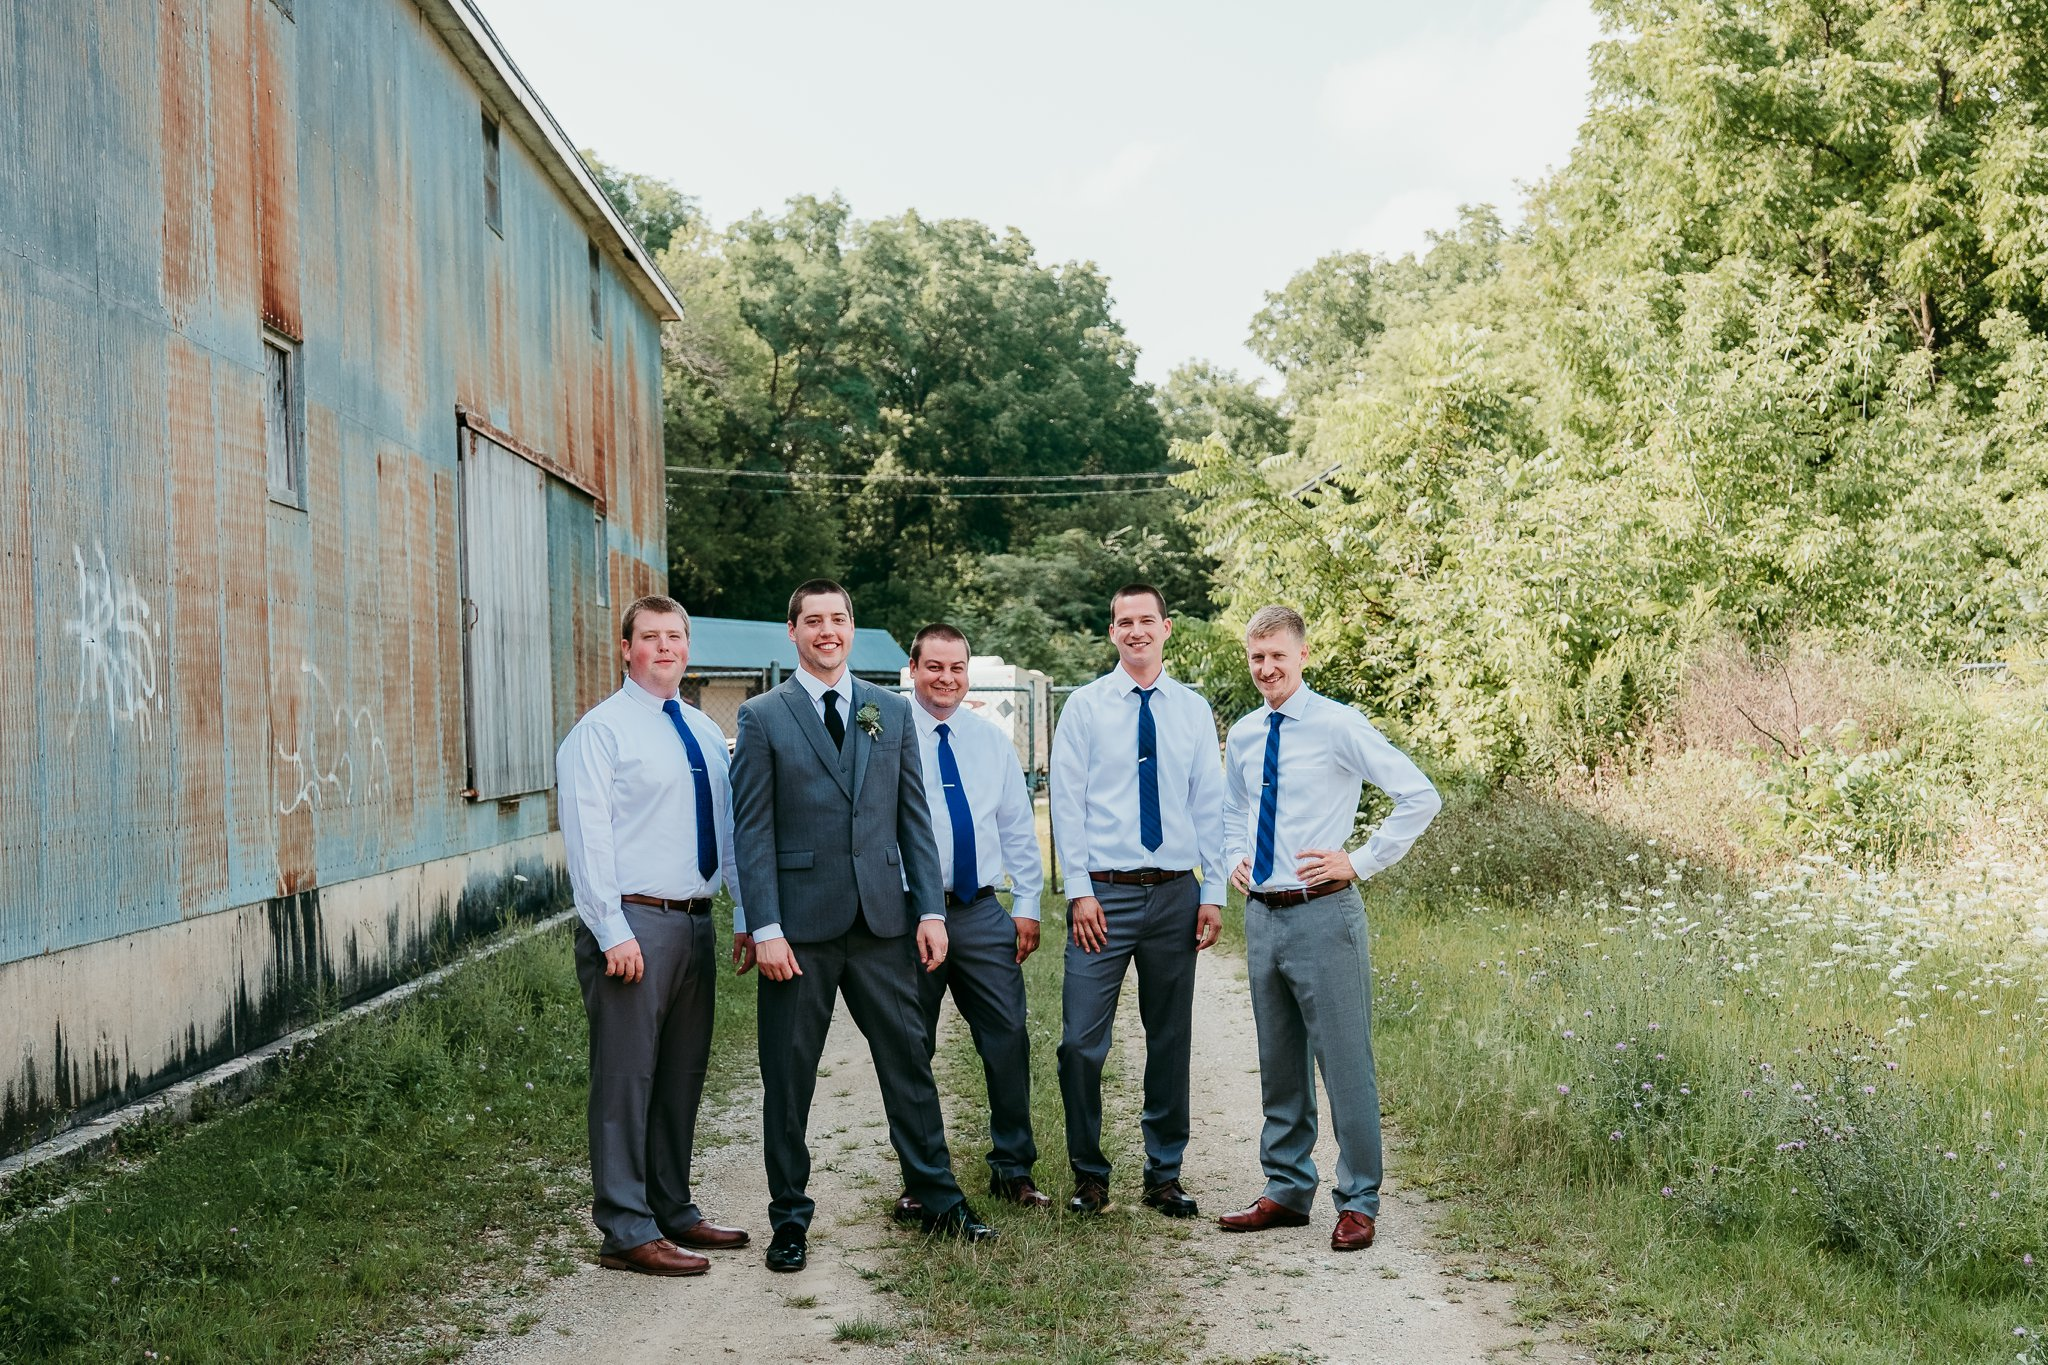 Lageret Wedding, Stoughton WI